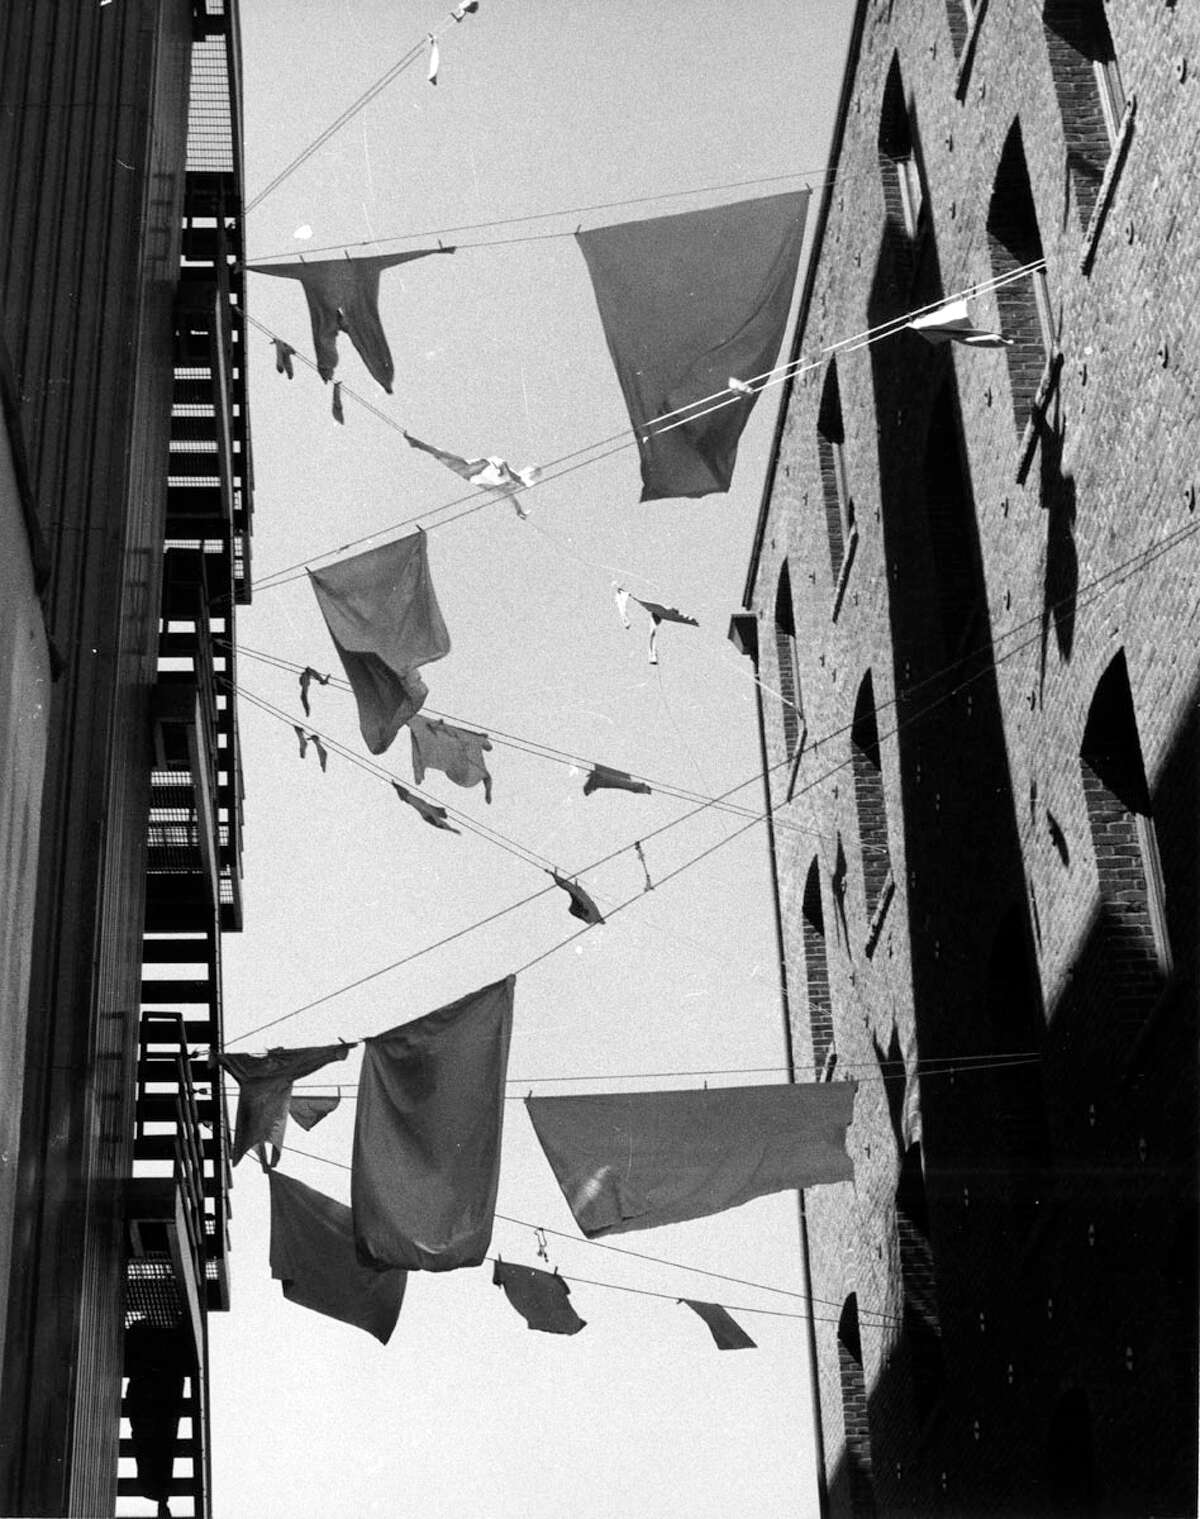 Seattle's Post Alley on May Day 1978. Laundry hangs across alley.